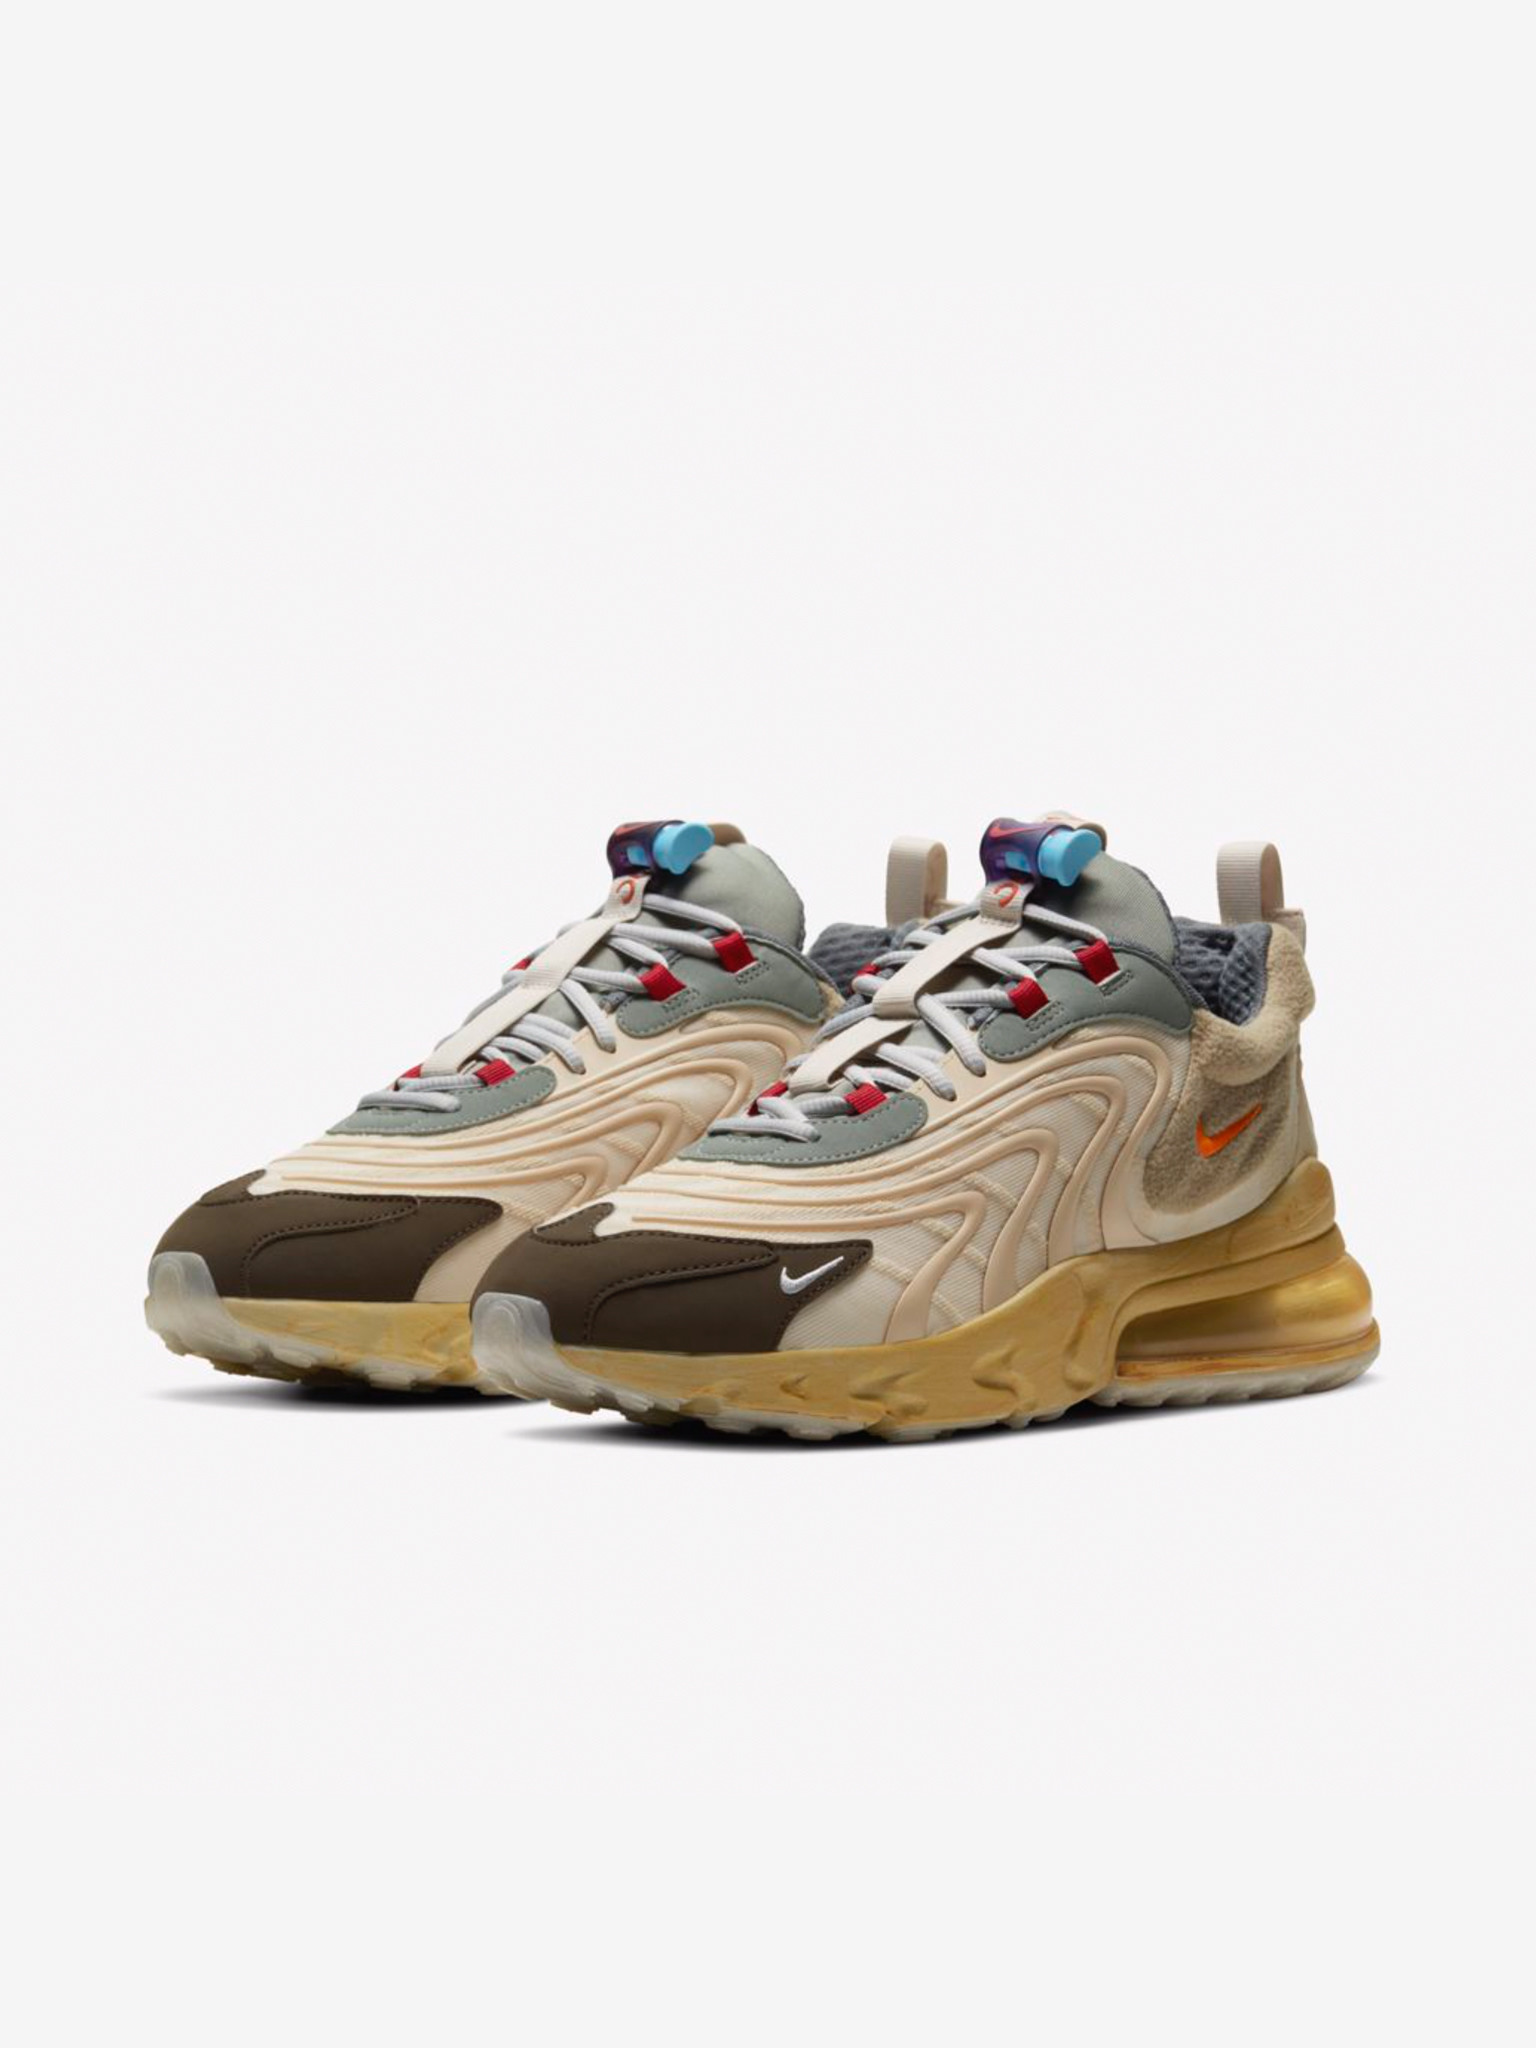 Air Max 270 React ENG Cactus Trails Sneakers